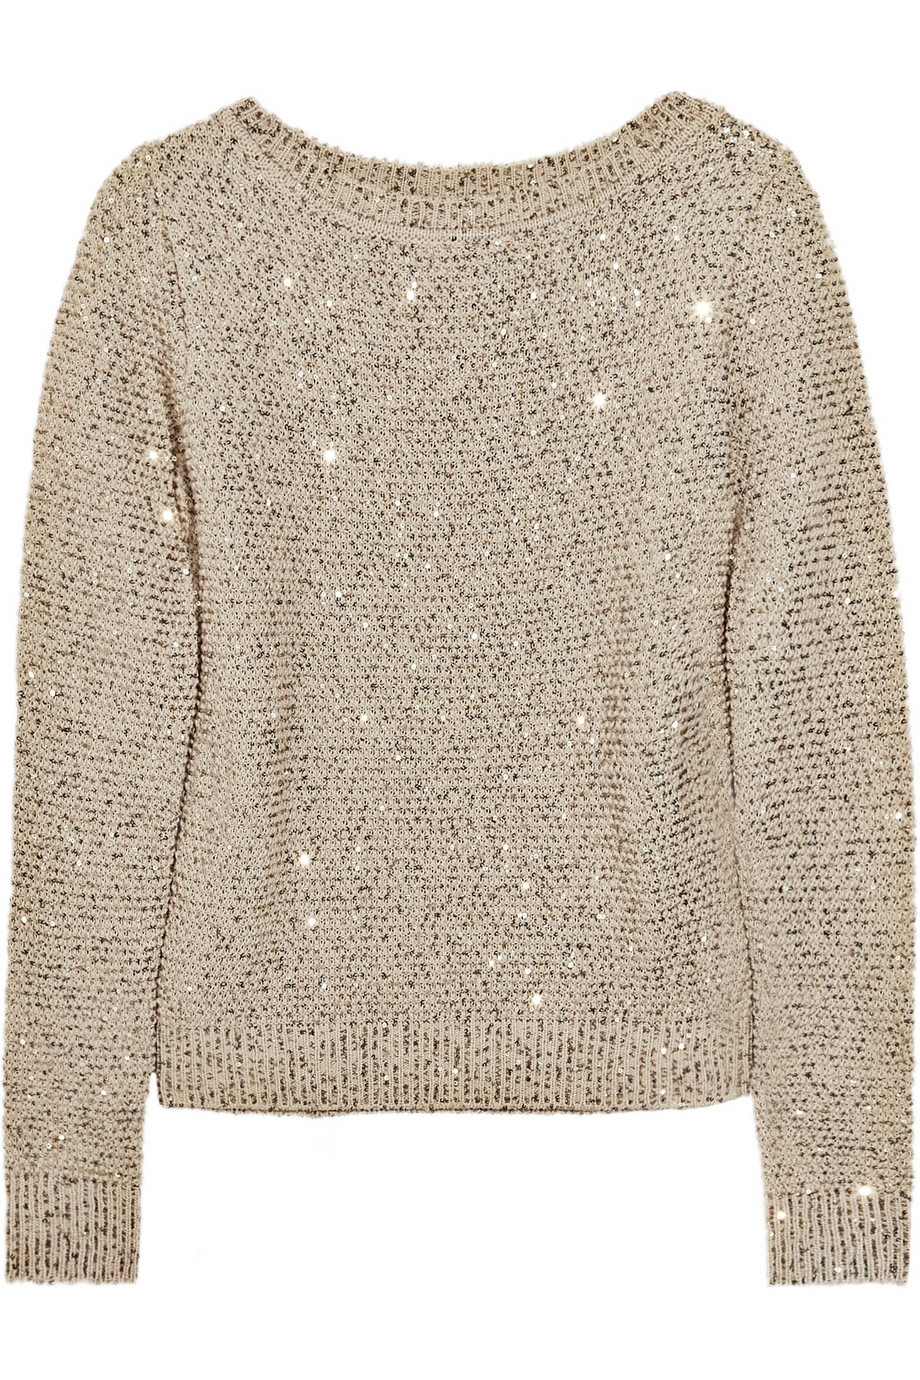 Sequin Sleeve Sweater